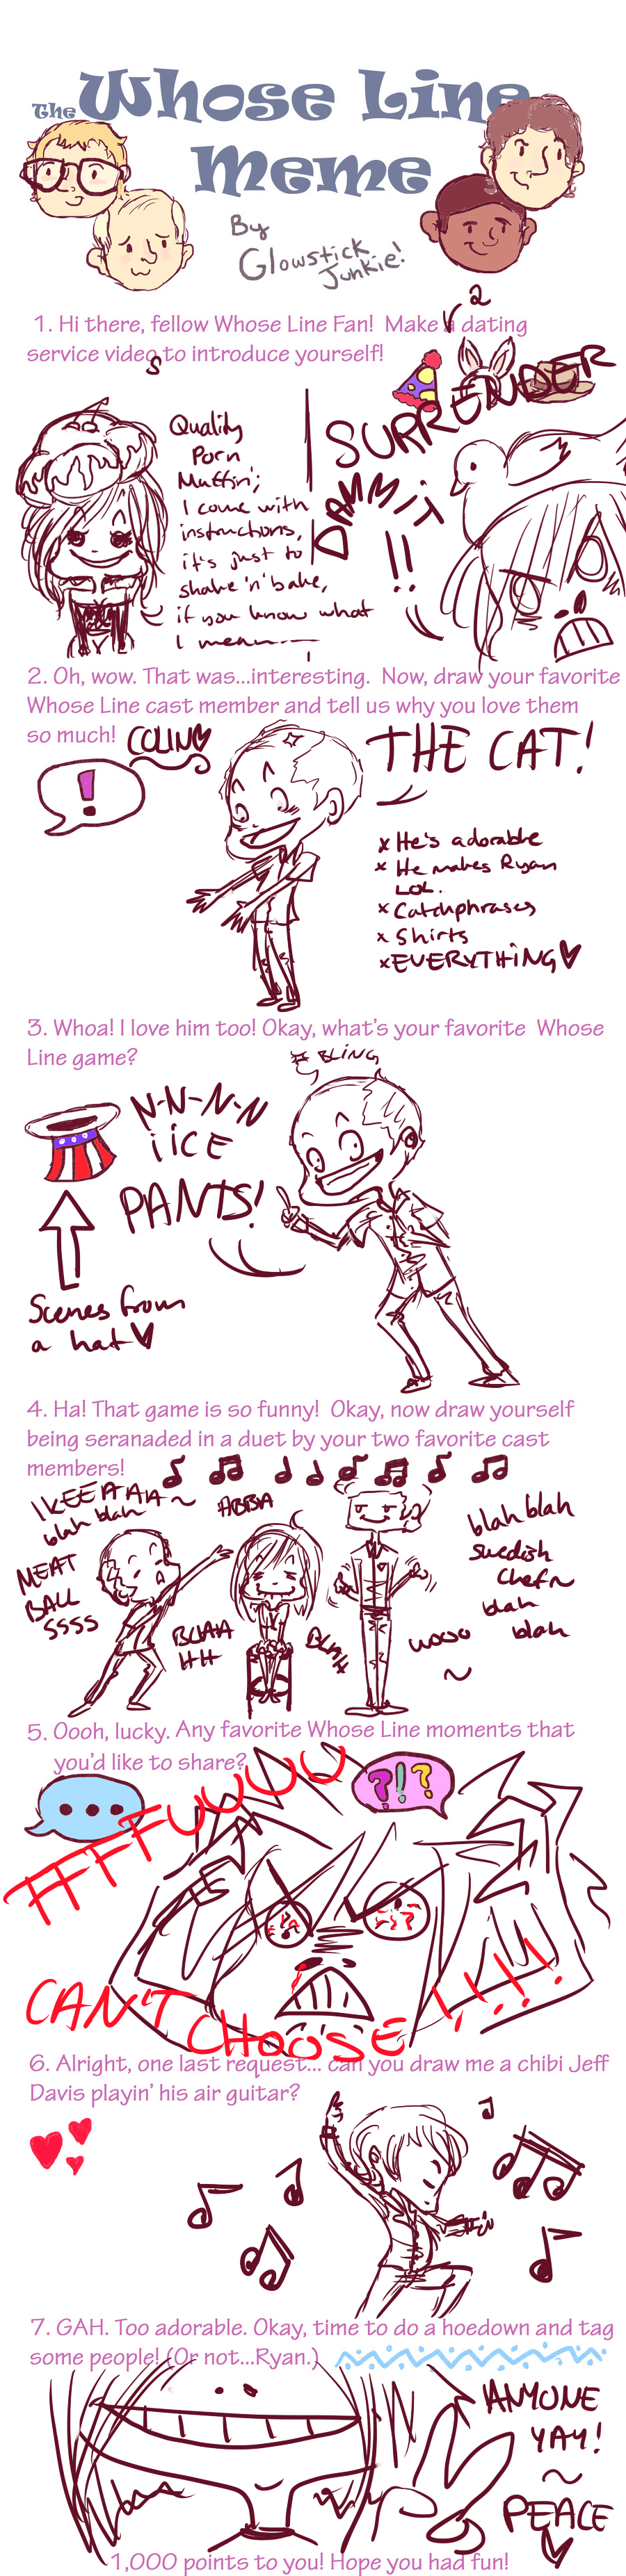 Line Art Meme : Whose line meme by surrenderdammit on deviantart